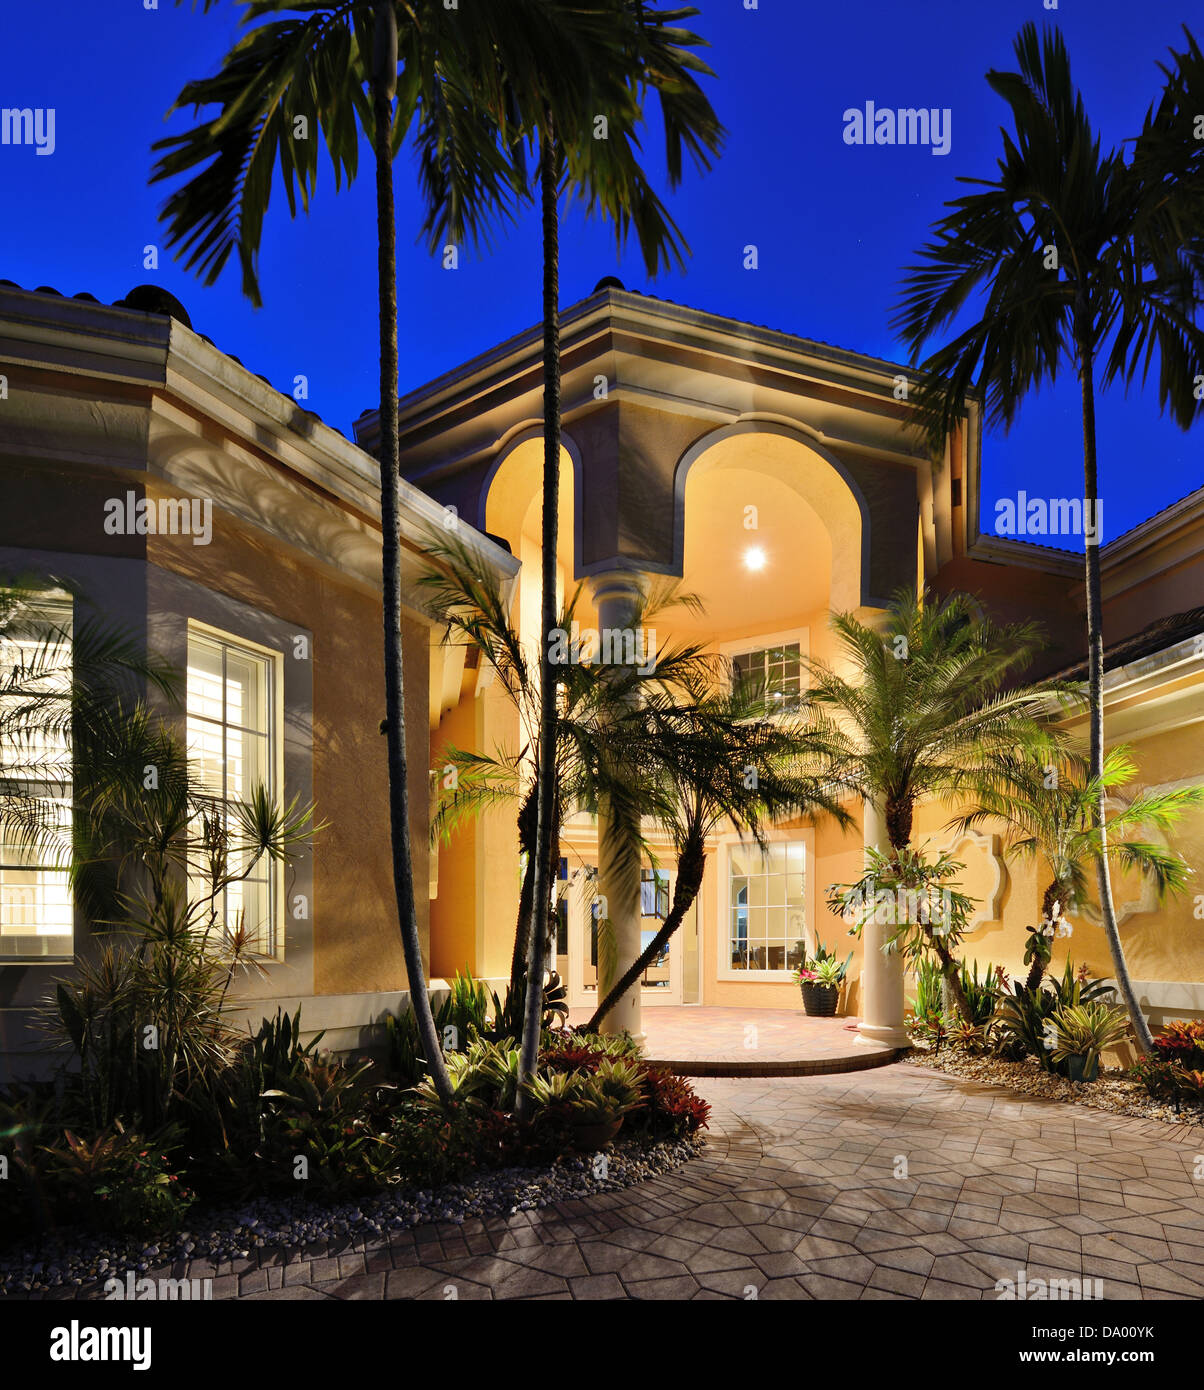 Mansion entrance in a tropical location. - Stock Image